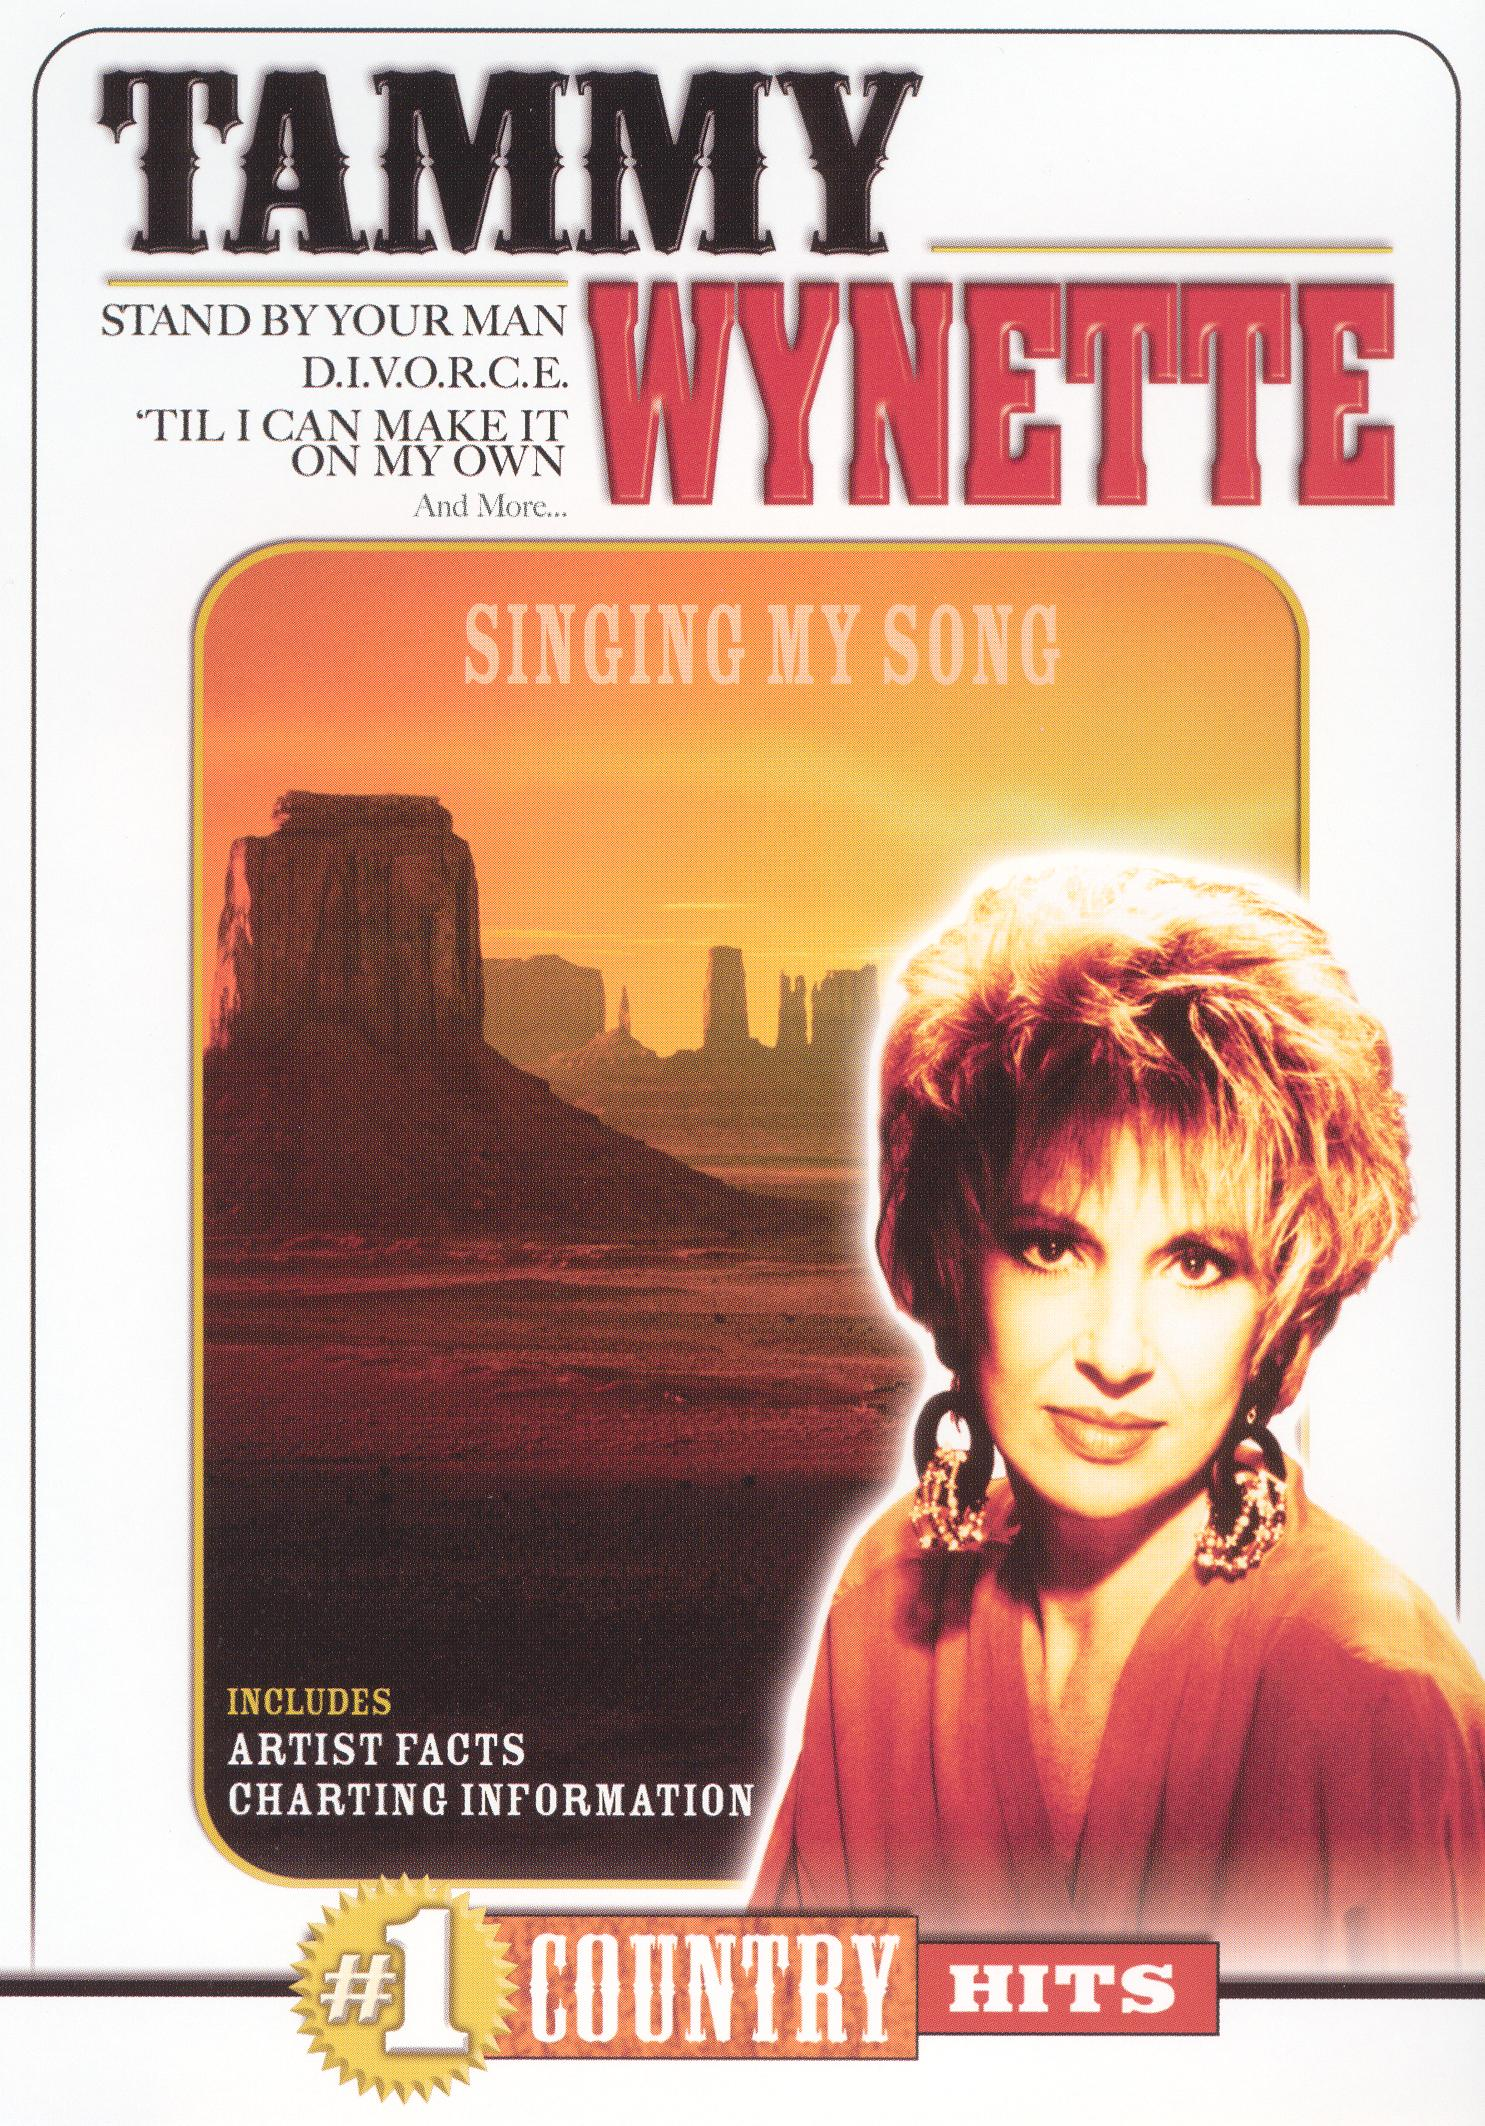 Country #1 Hits: Tammy Wynette